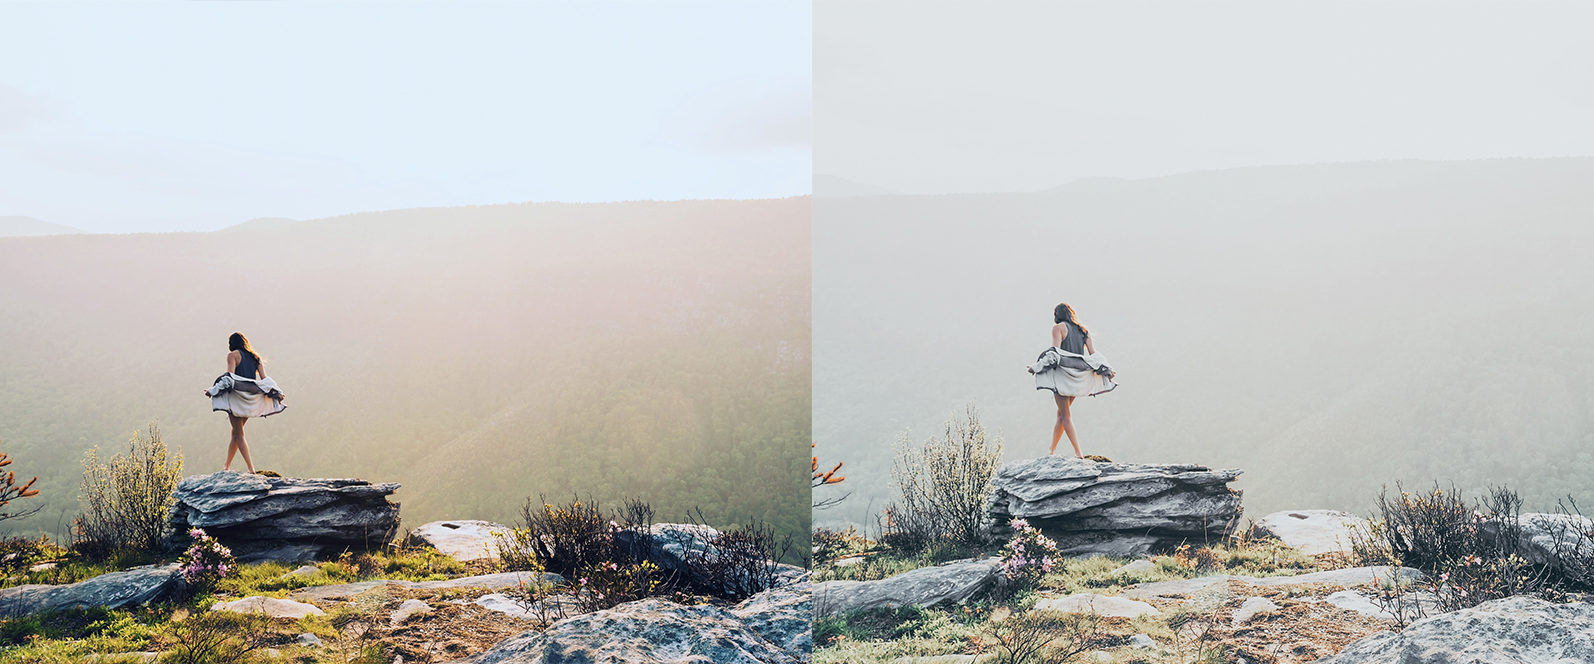 50 x TRAVEL BLOGGER PRESETS // Collect Memories // THE ONLY PRESETS YOU WILL EVER NEED - Preview 9 1 -